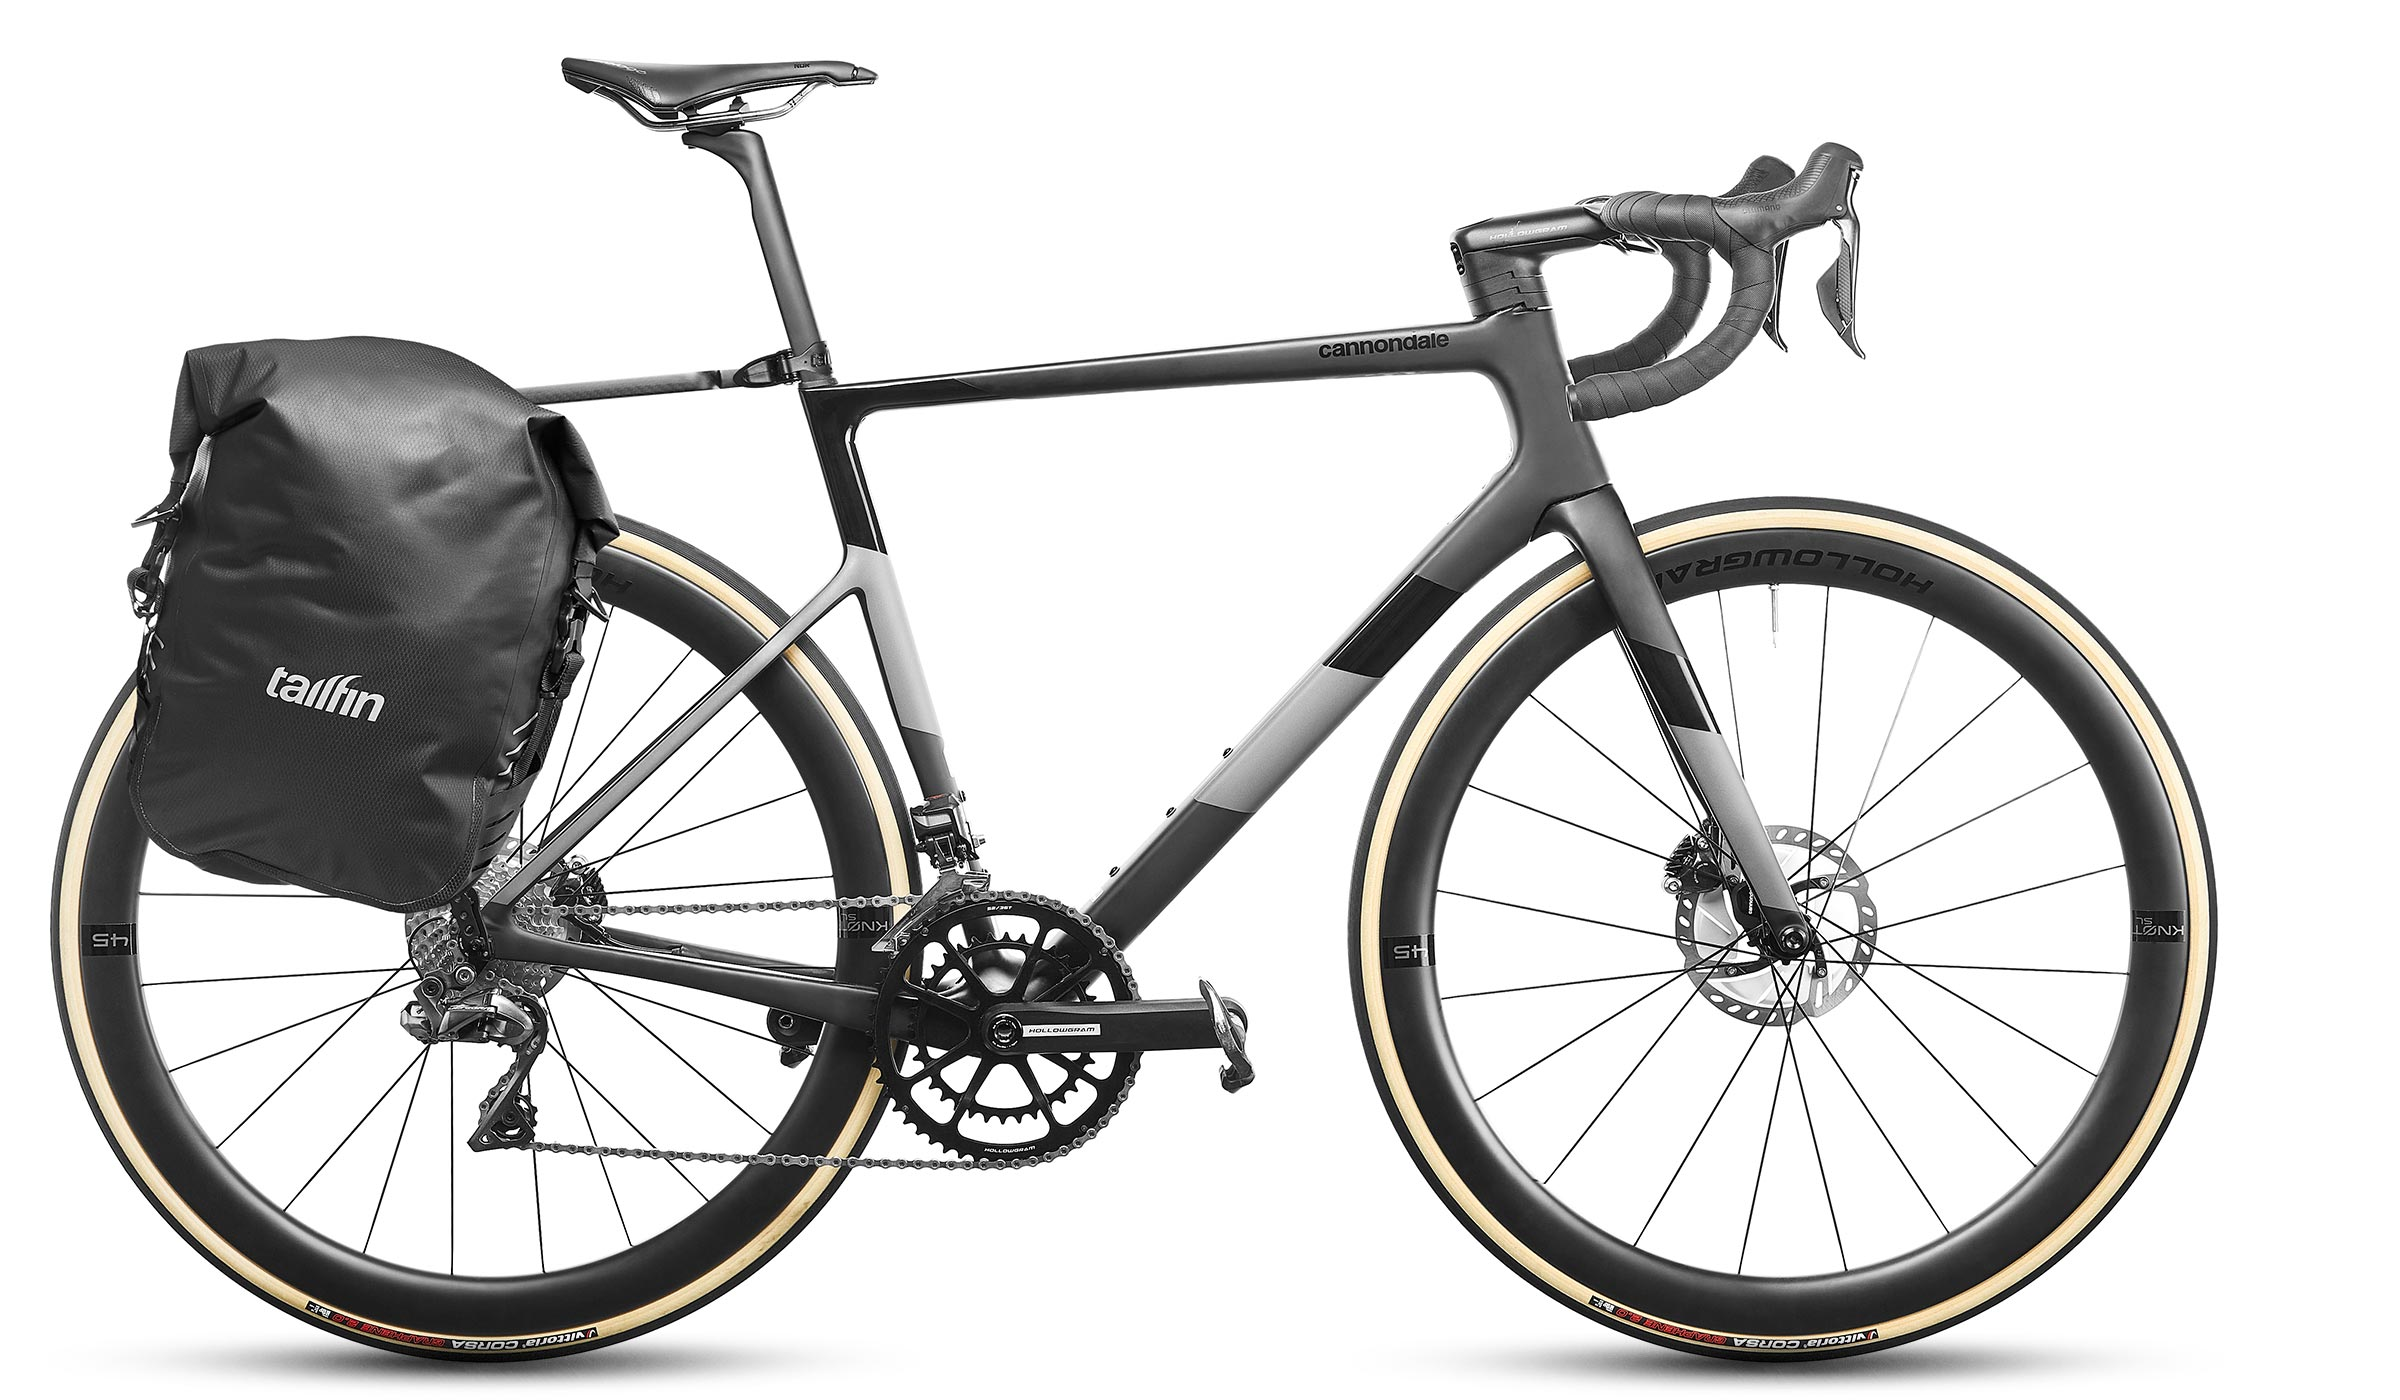 carbon rack with side pannier